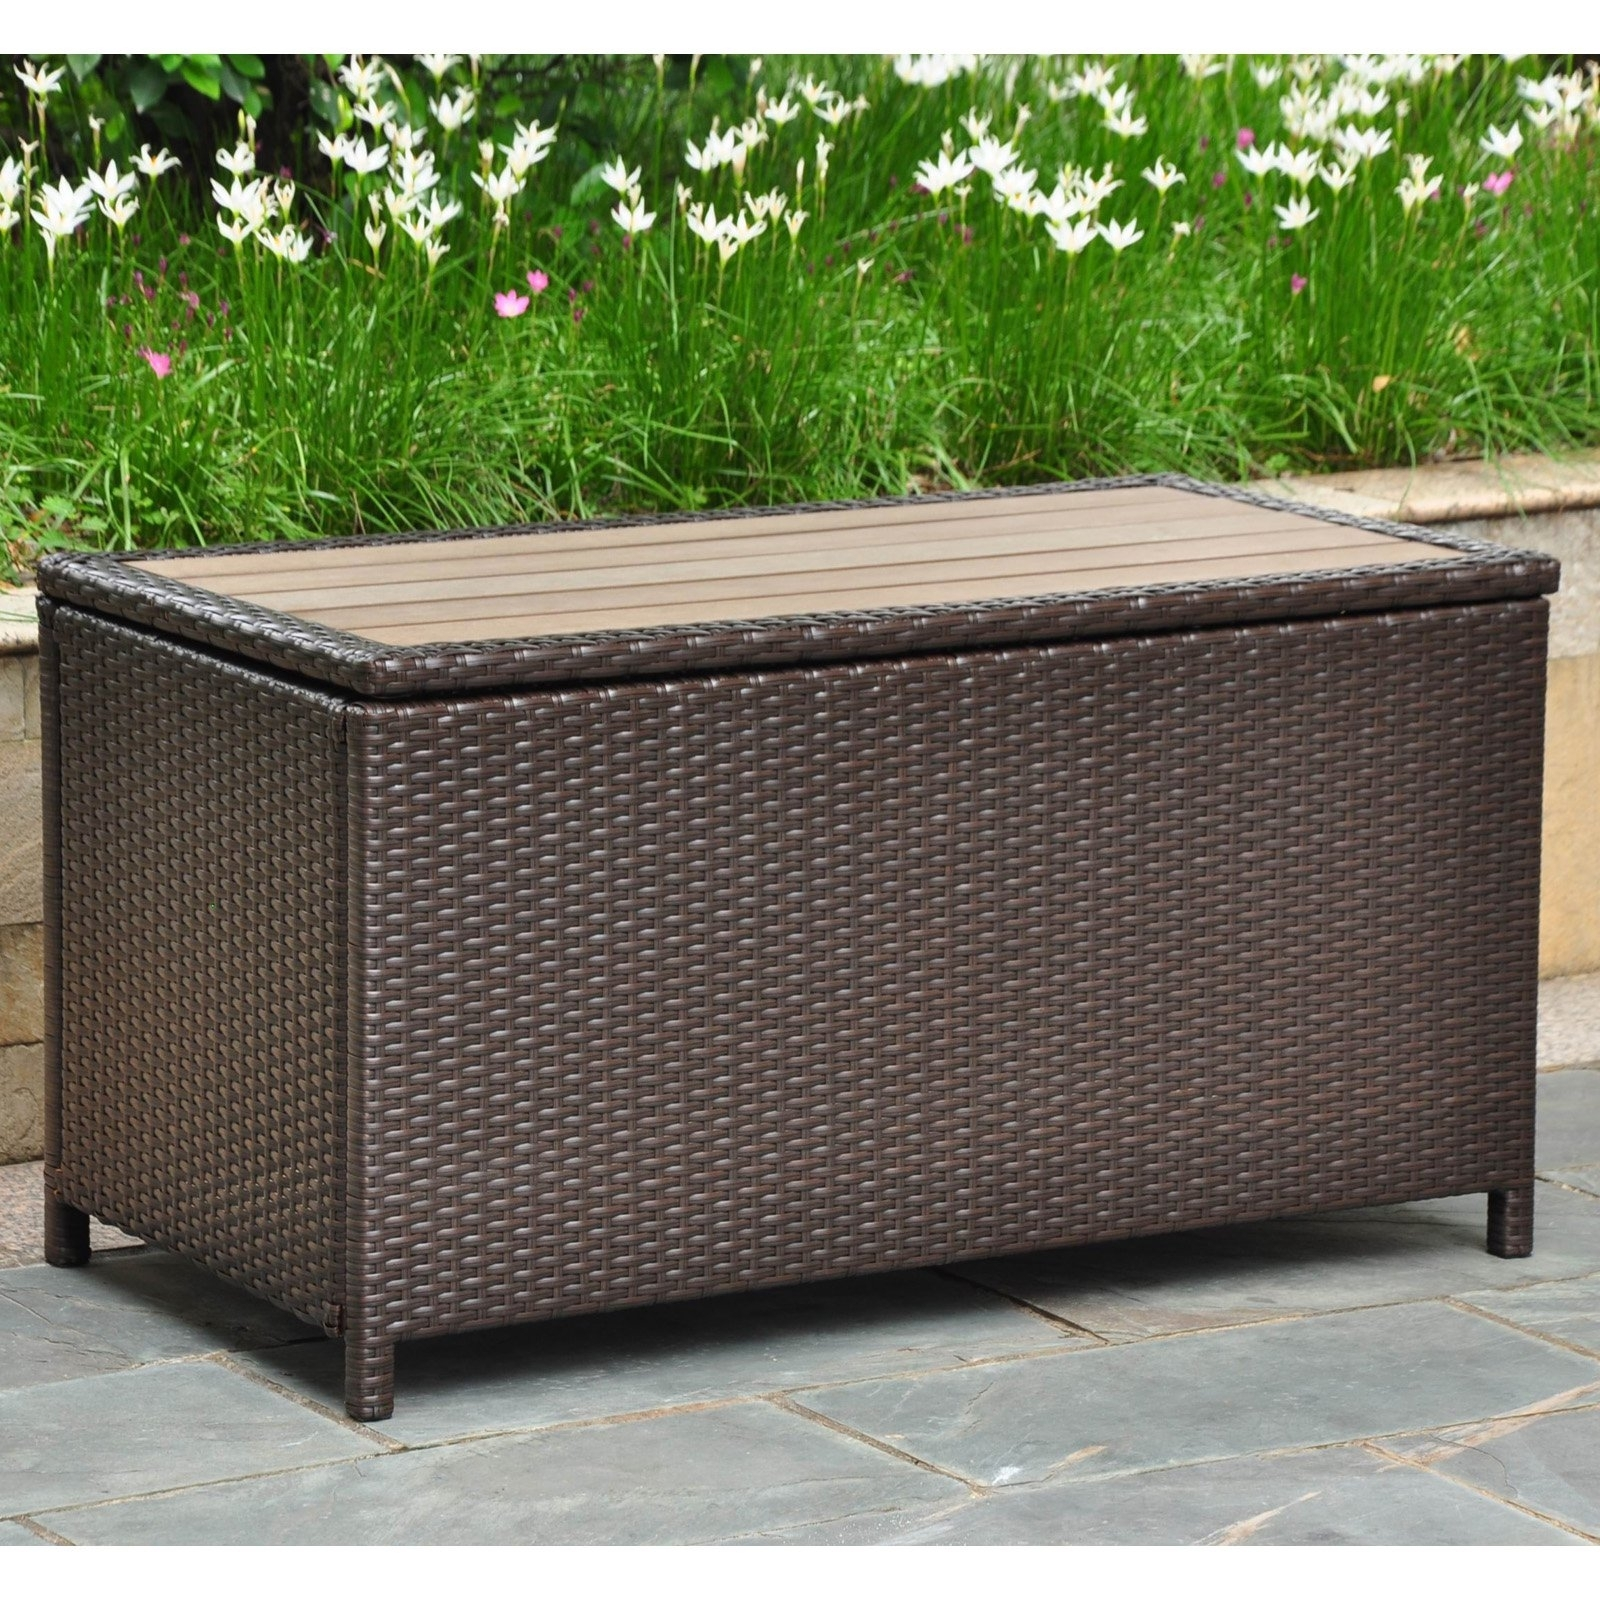 Belham Living Bayport Outdoor Storage Deck Box With Acacia Top Pertaining To Storage For Outdoor Cushions Store Storage For Outdoor Cushions